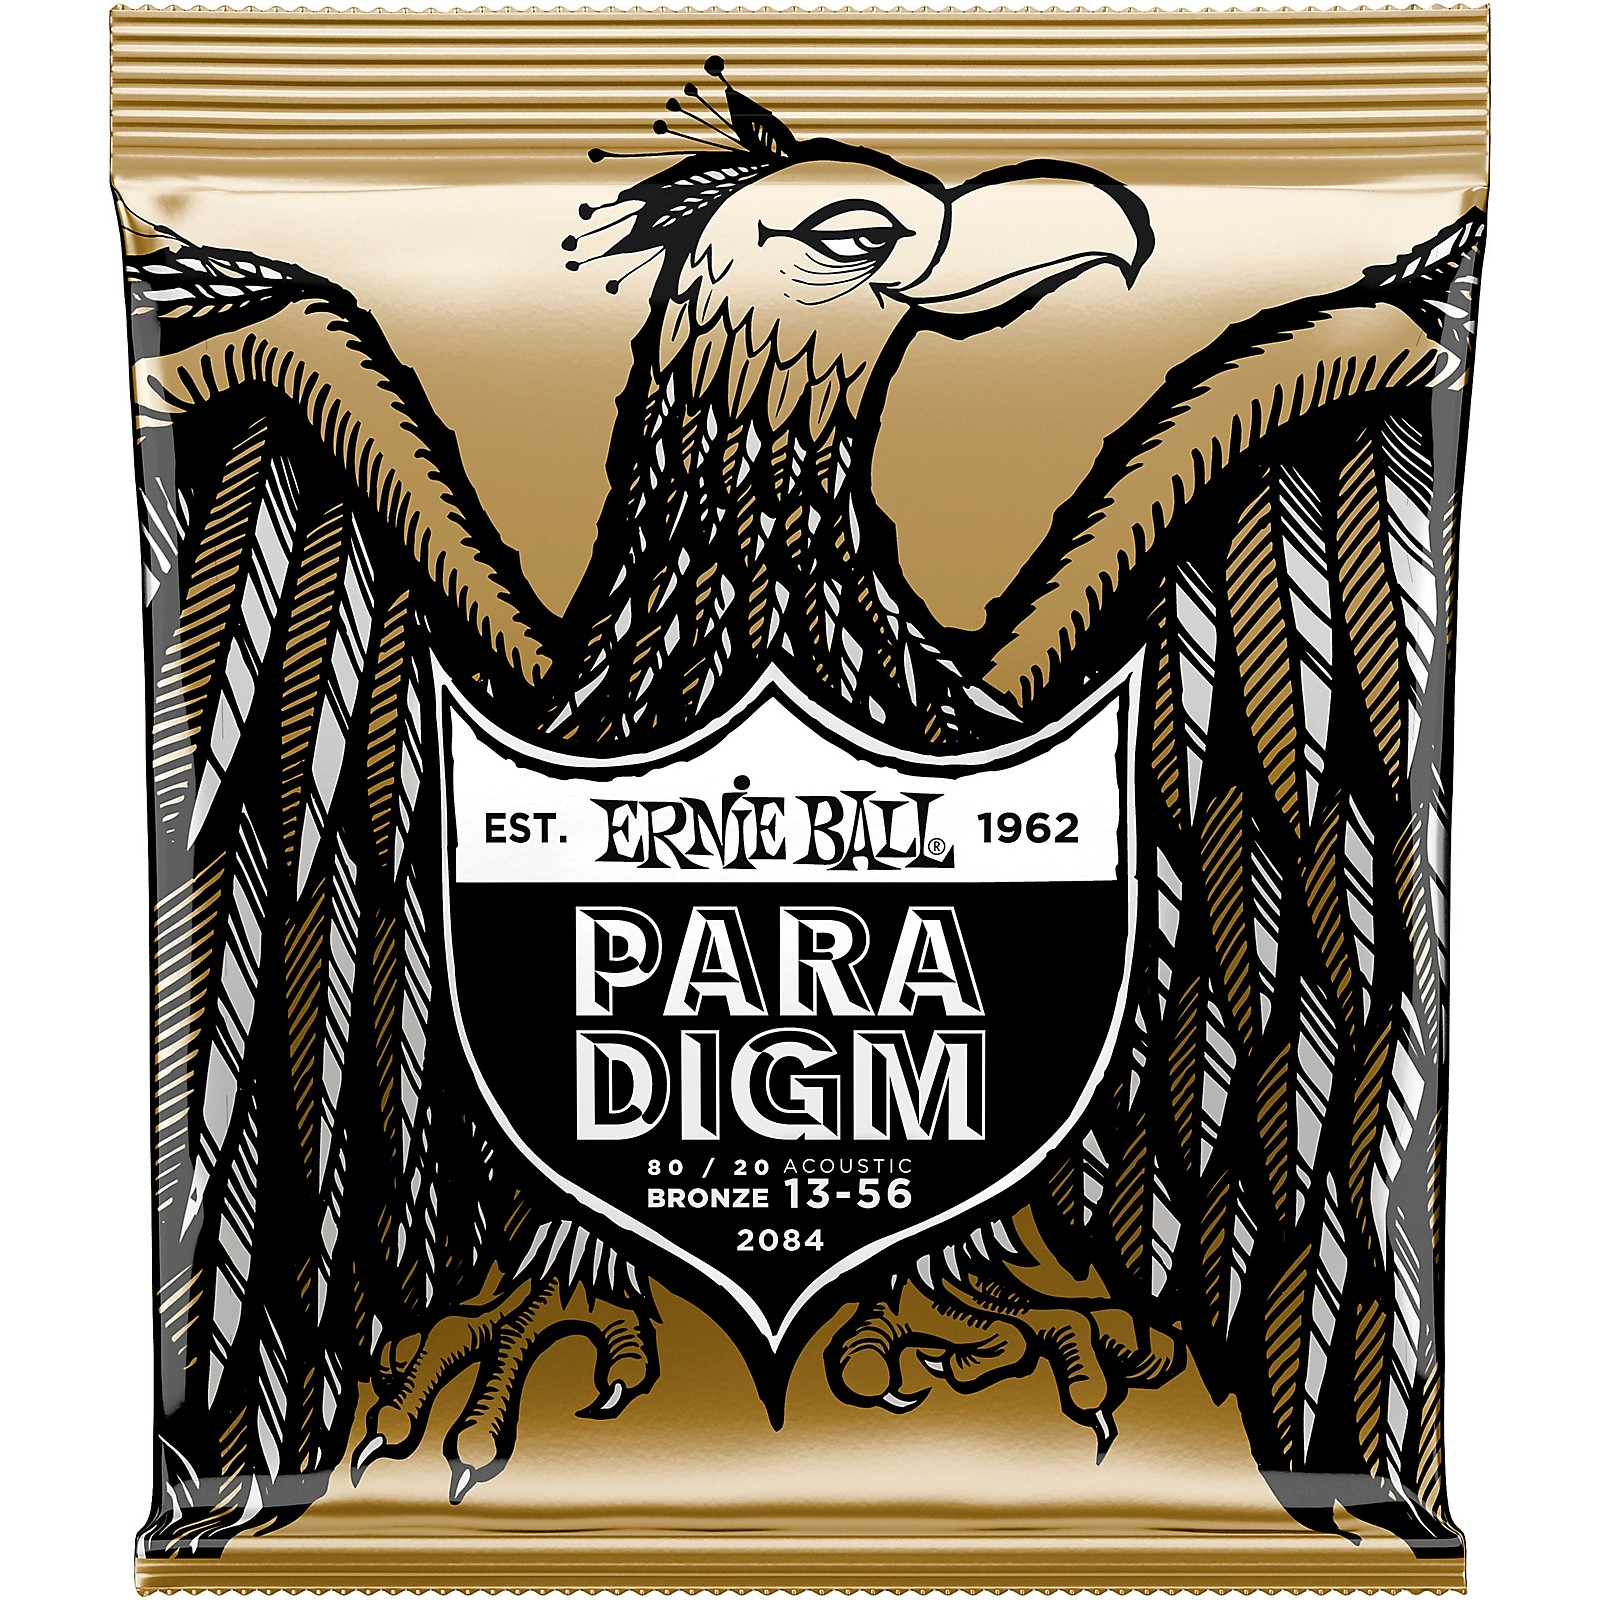 Ernie Ball Paradigm 80/20 Acoustic Guitar Strings Medium